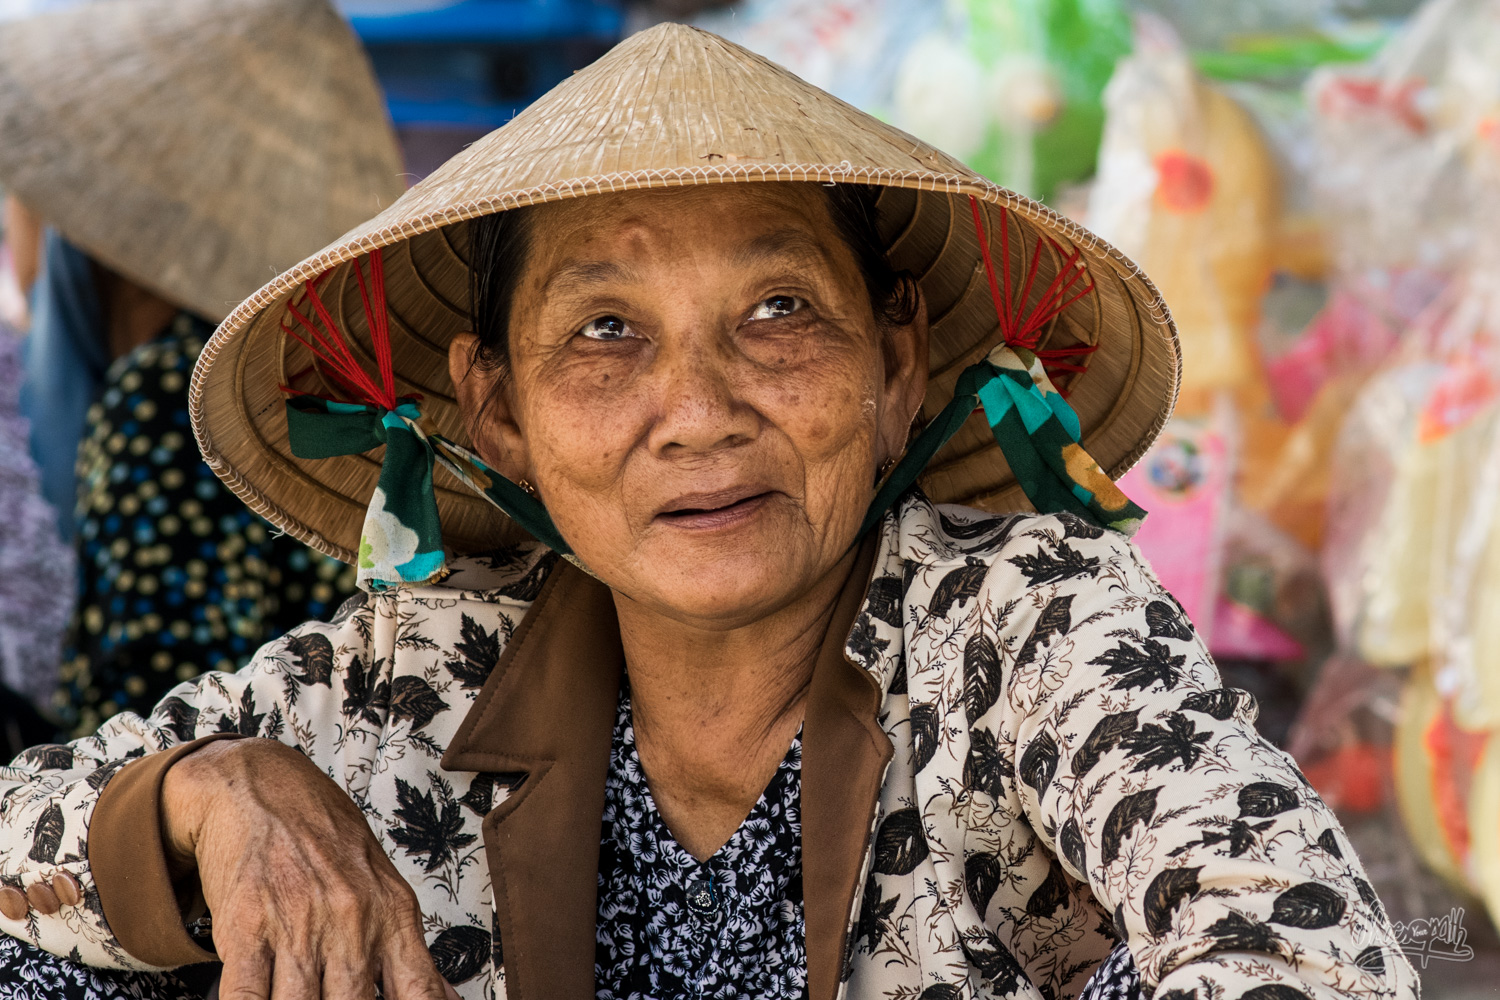 Smiling street seller in Chau Doc